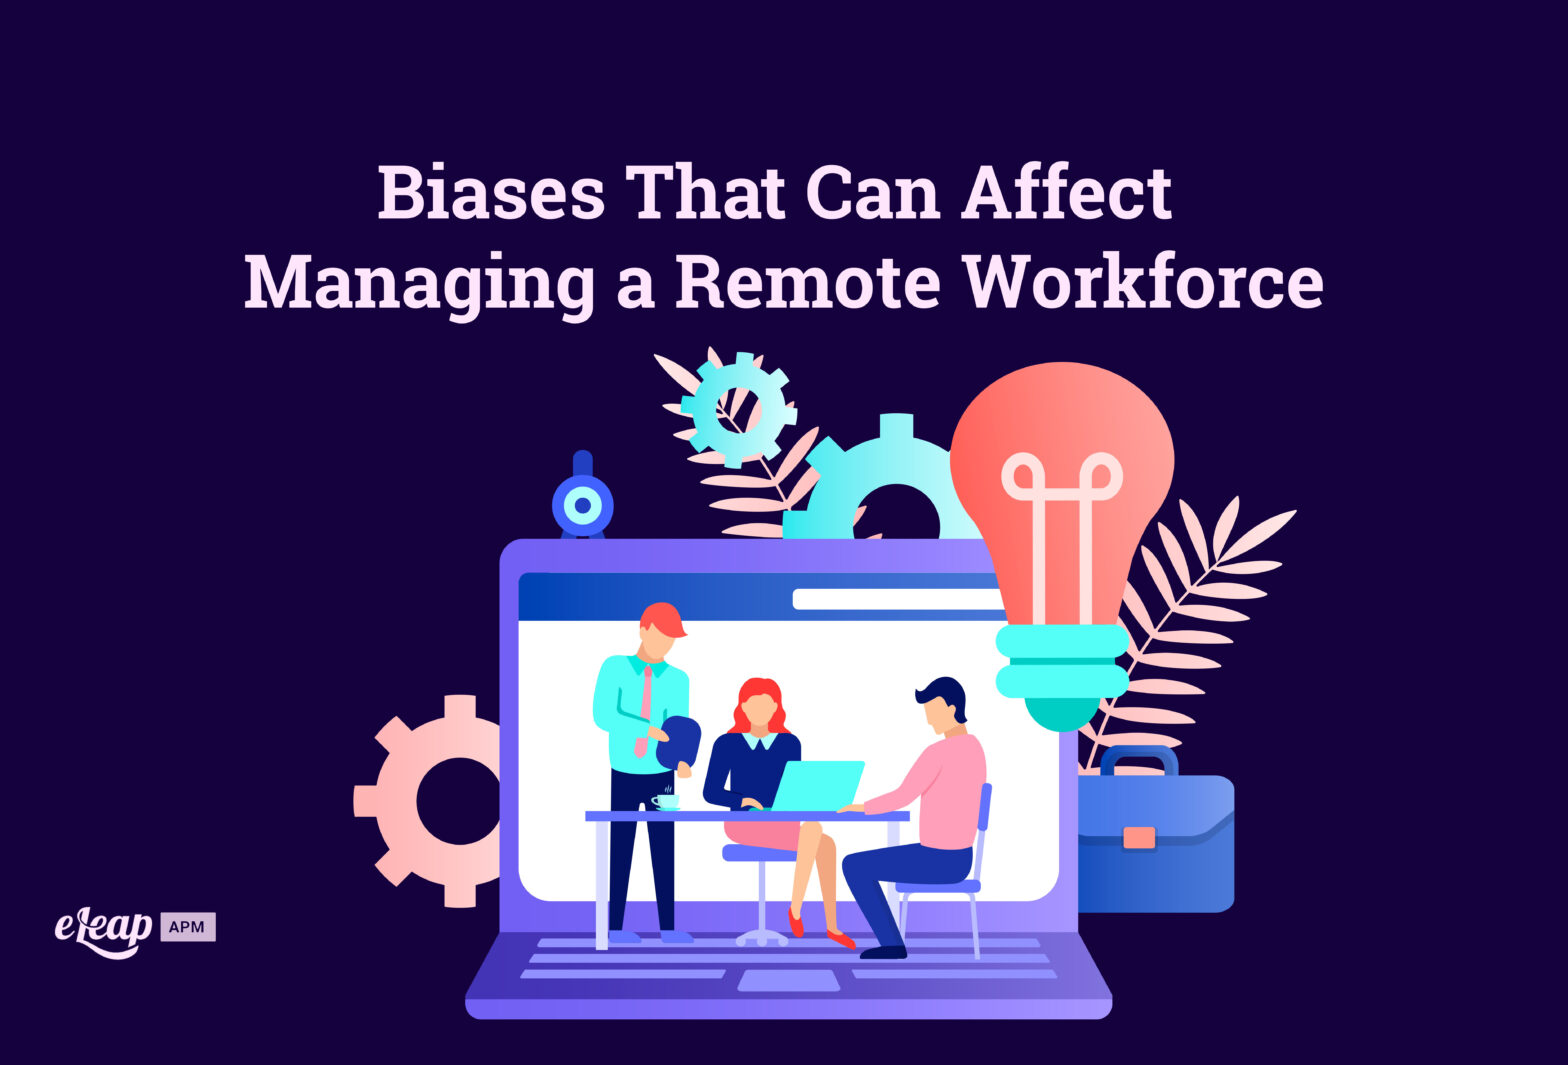 Biases That Can Affect Managing a Remote Workforce